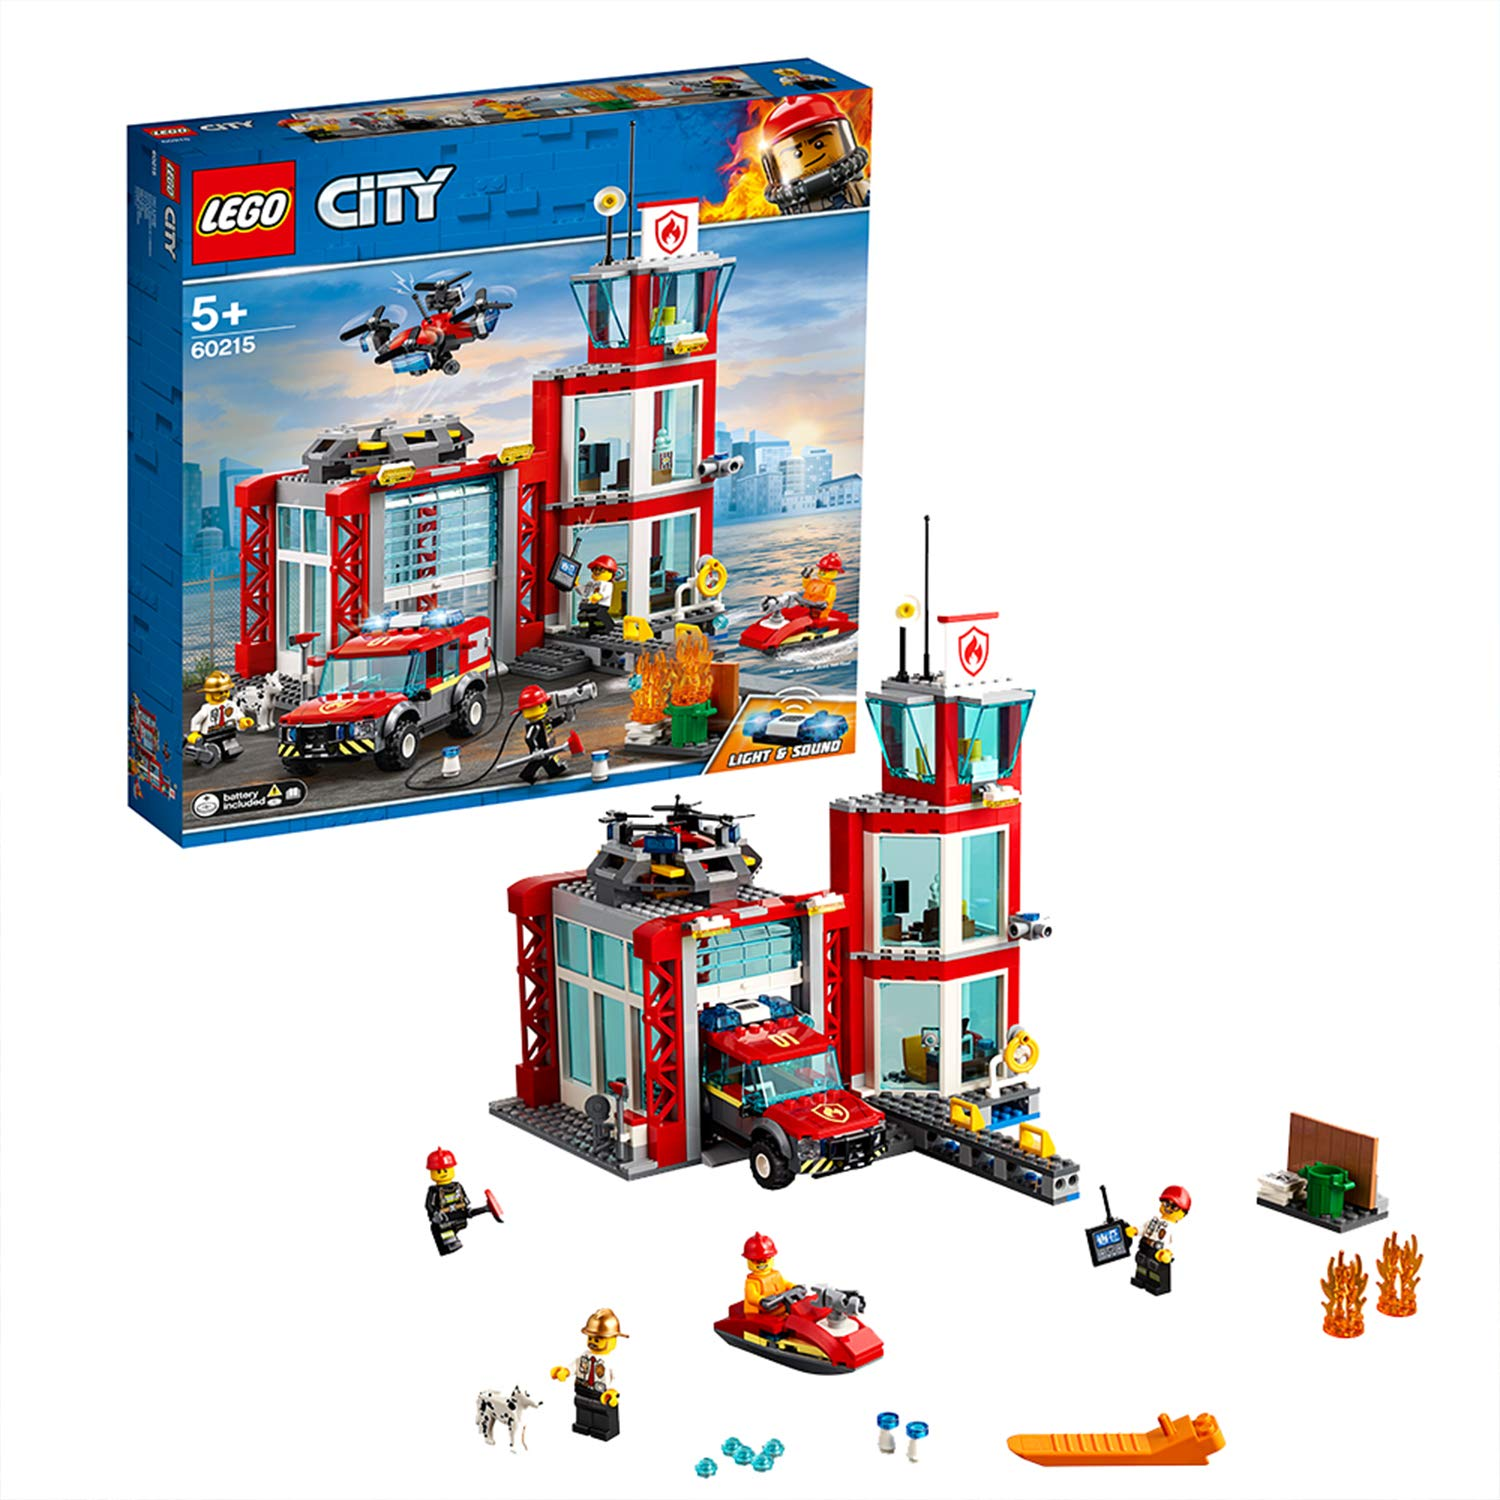 LEGO 60215 City Fire Station Building Set for £41.99